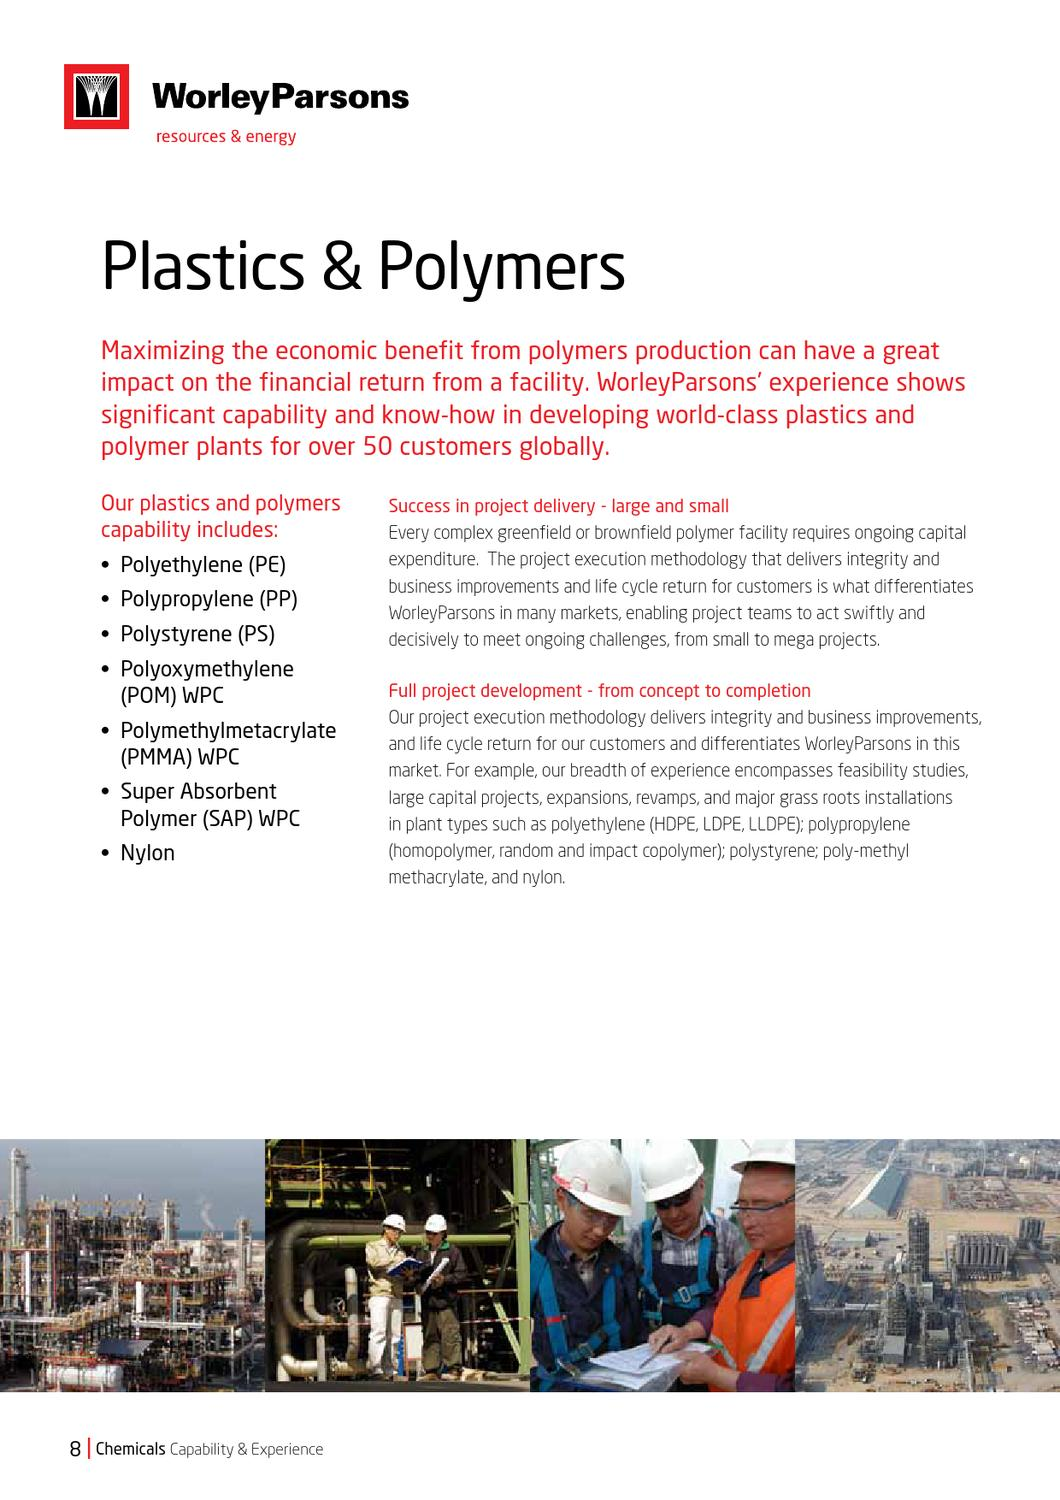 Chemicals Capability and Experience brochure by